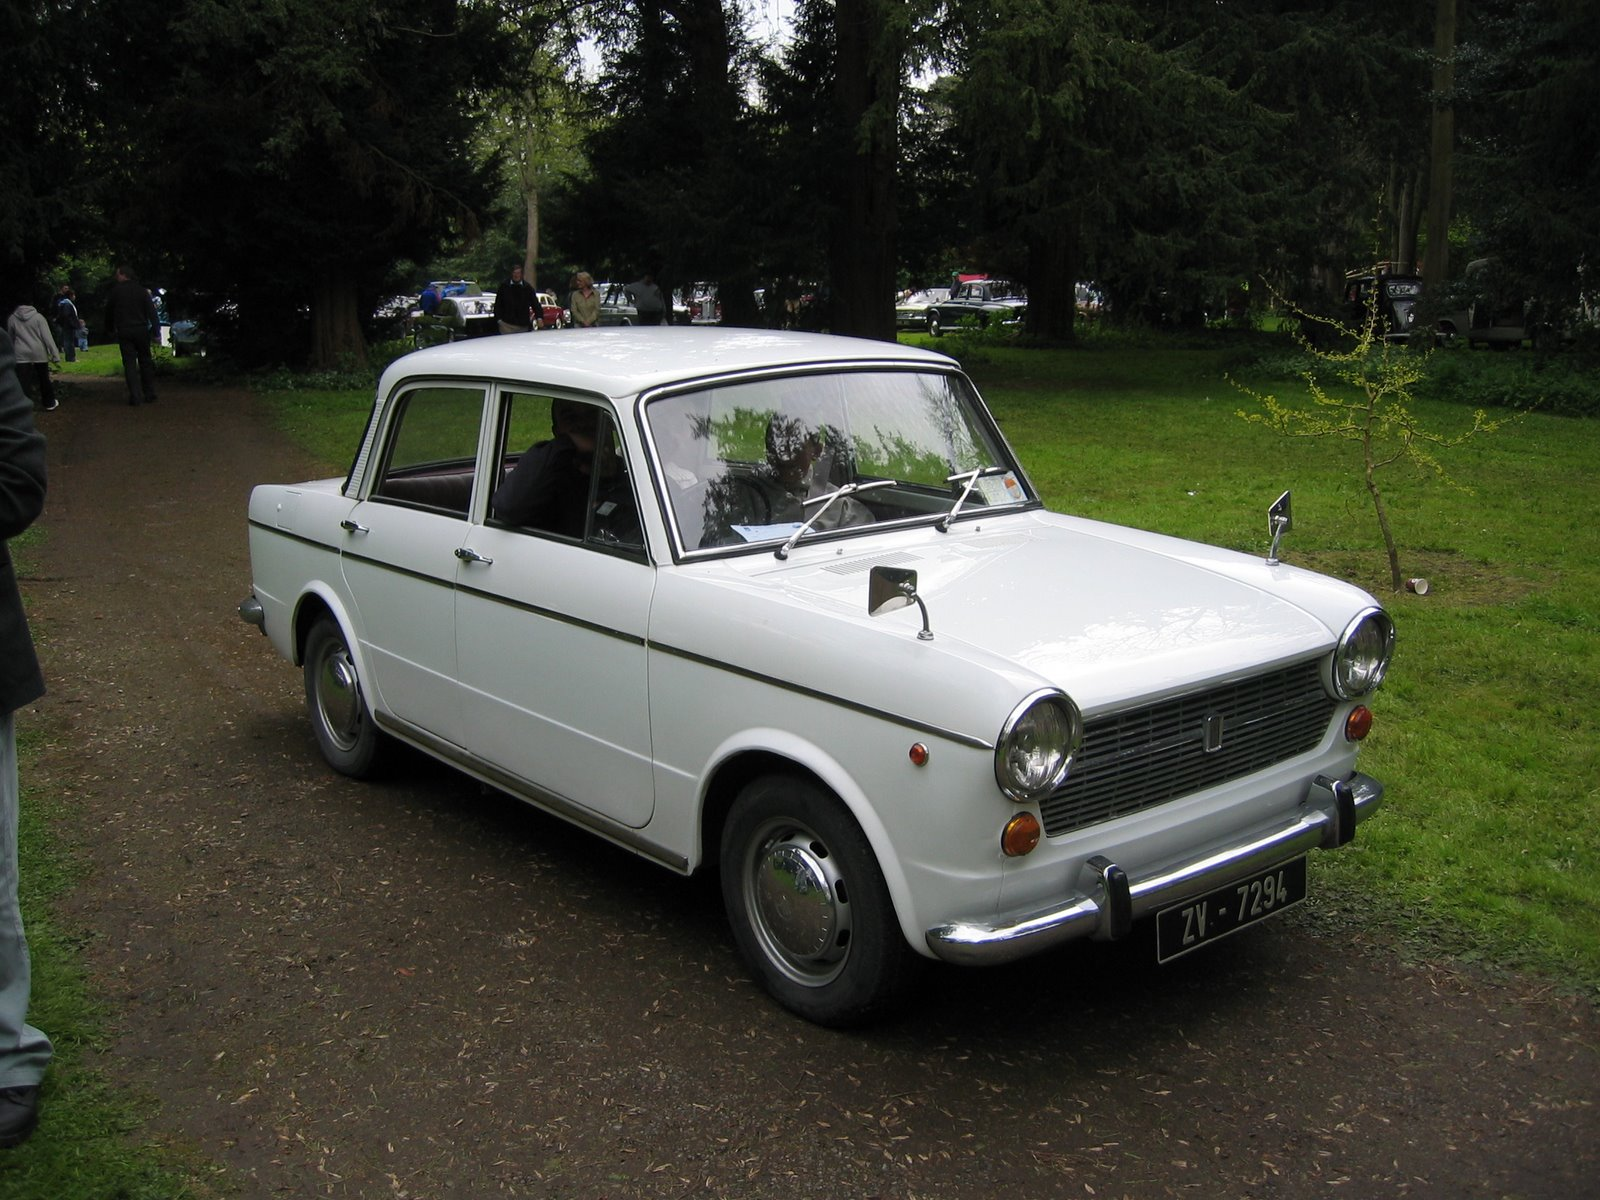 1966 Fiat 1100r Carsaddiction Com